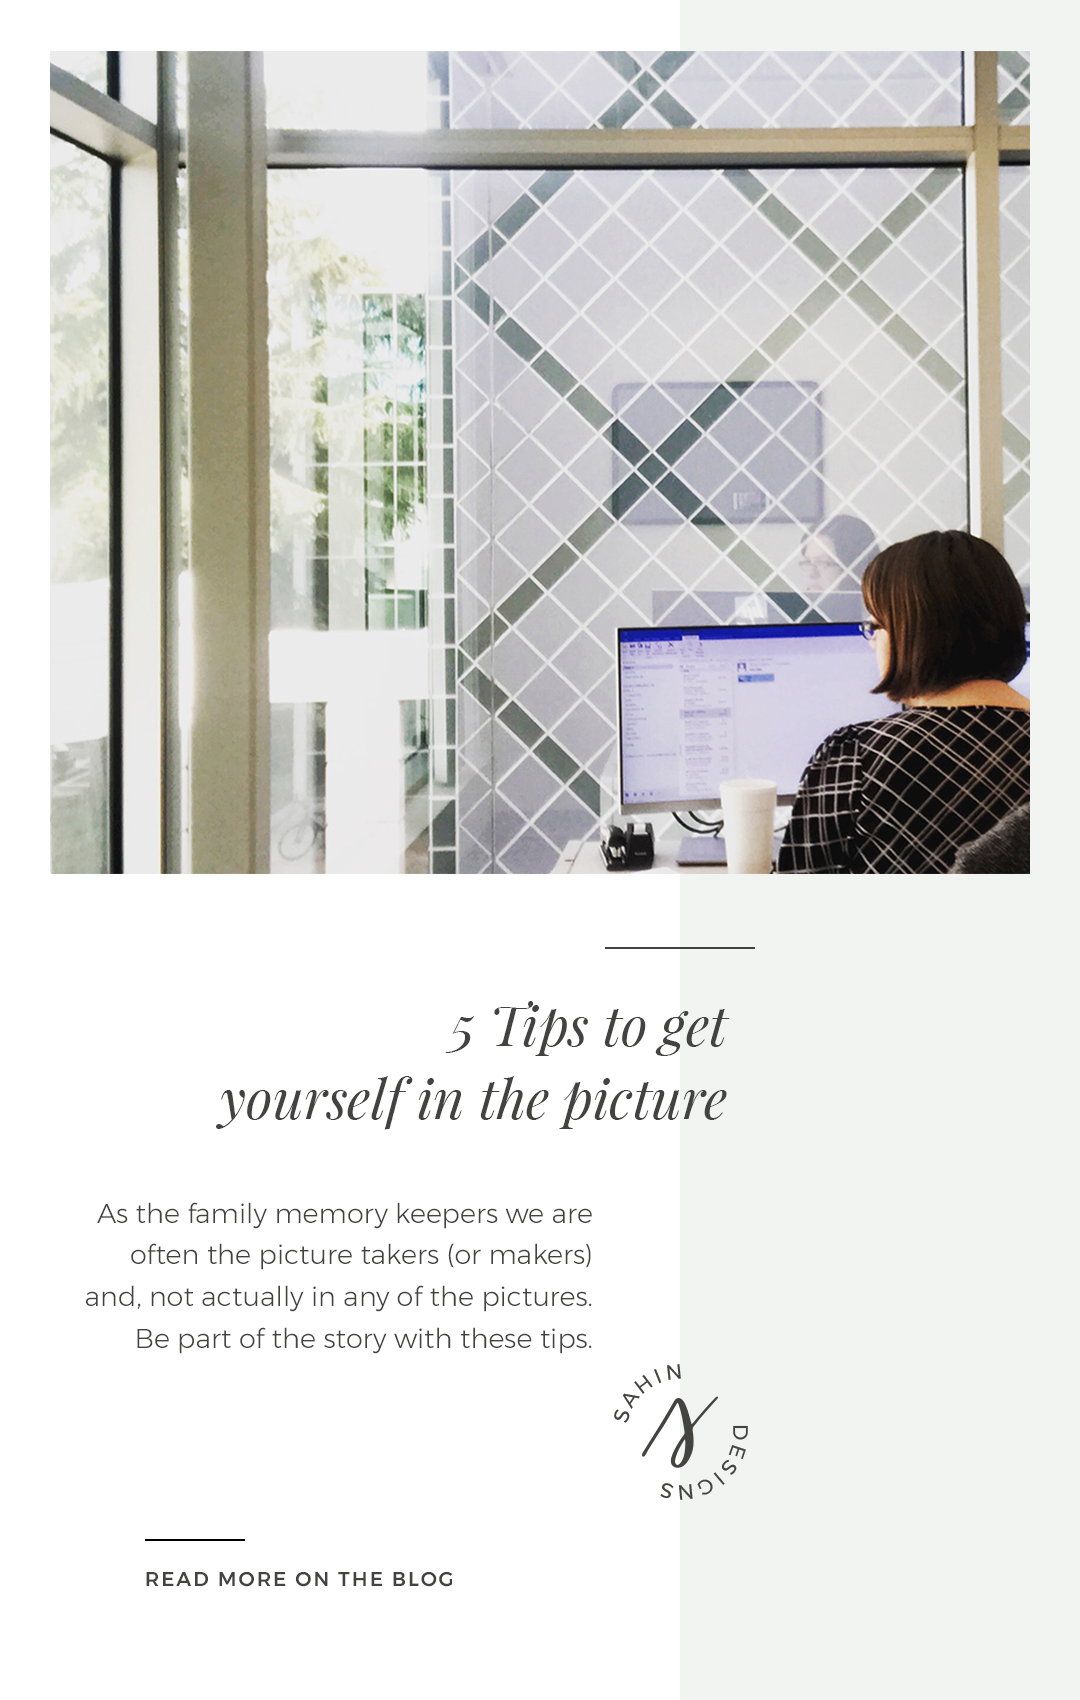 5 Tips to get yourself in the picture - Sahin Designs